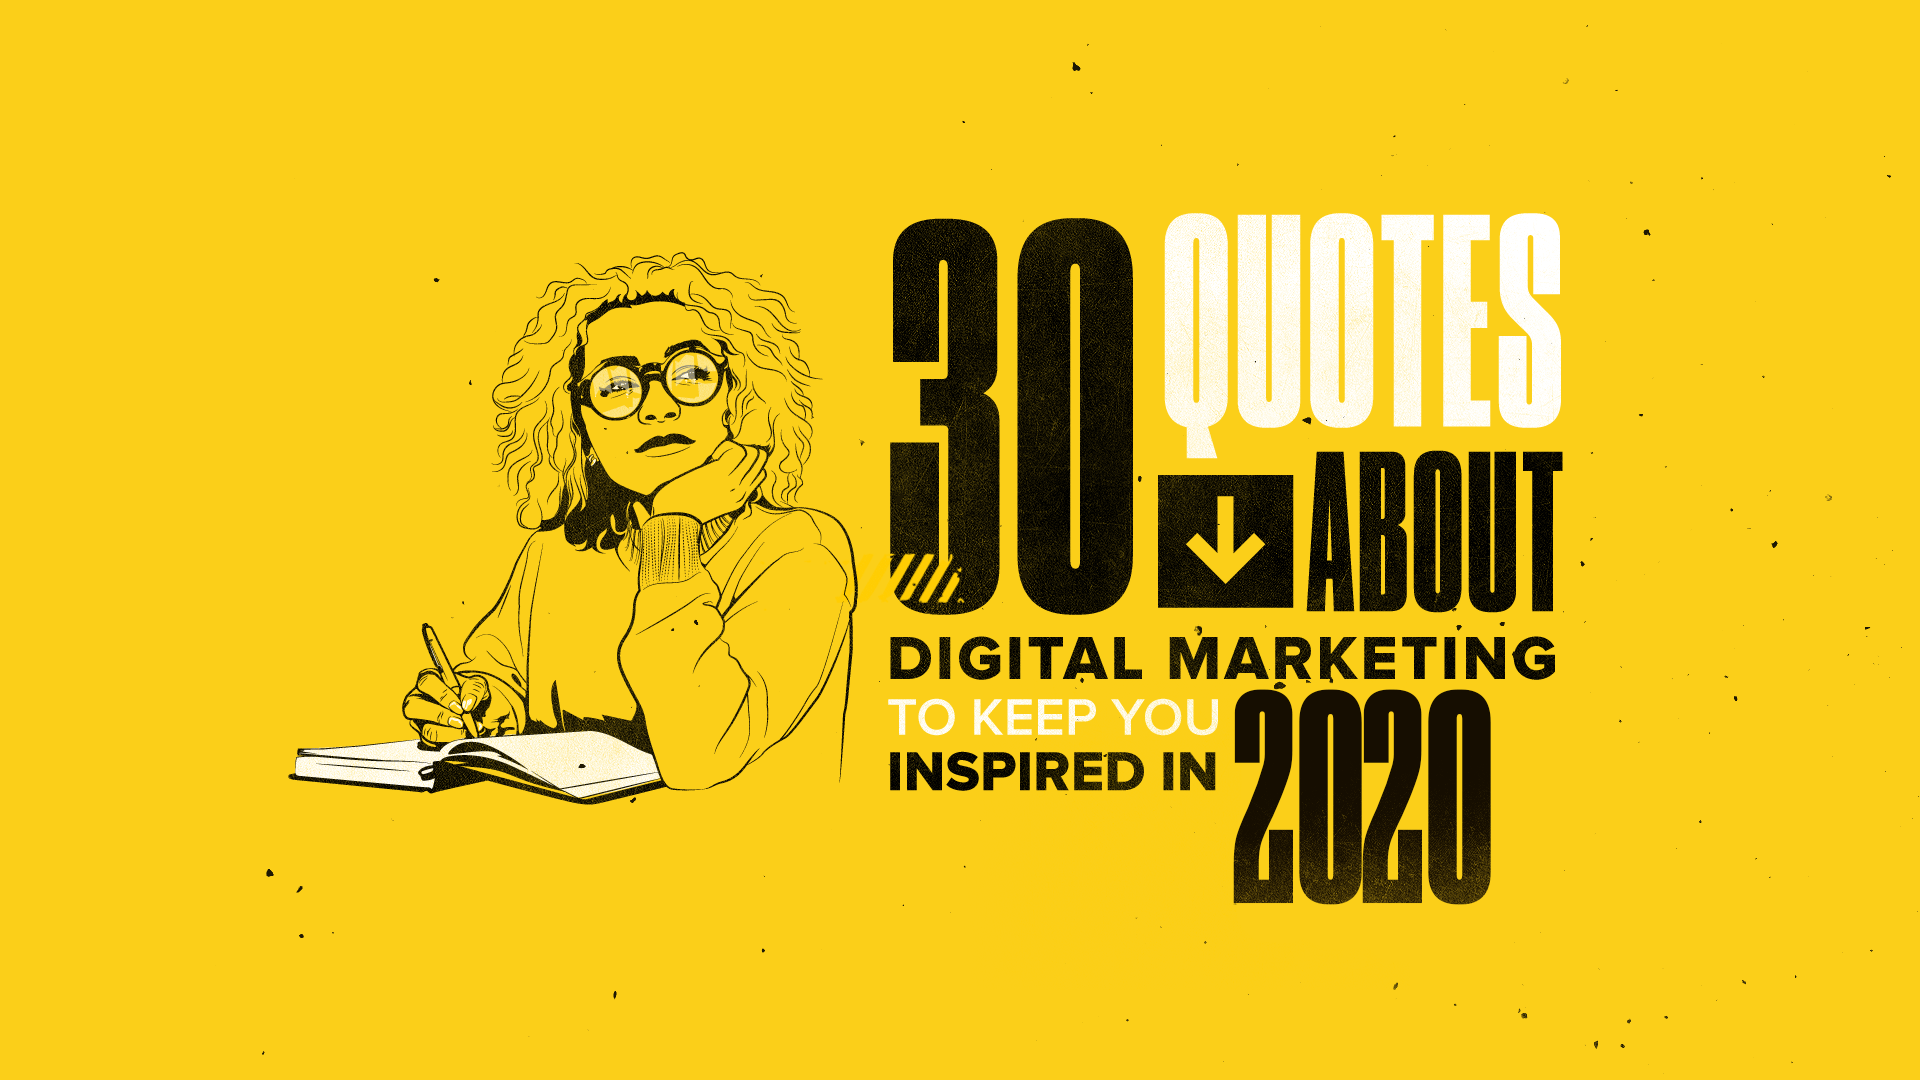 2020 Digital Marketing Quotes